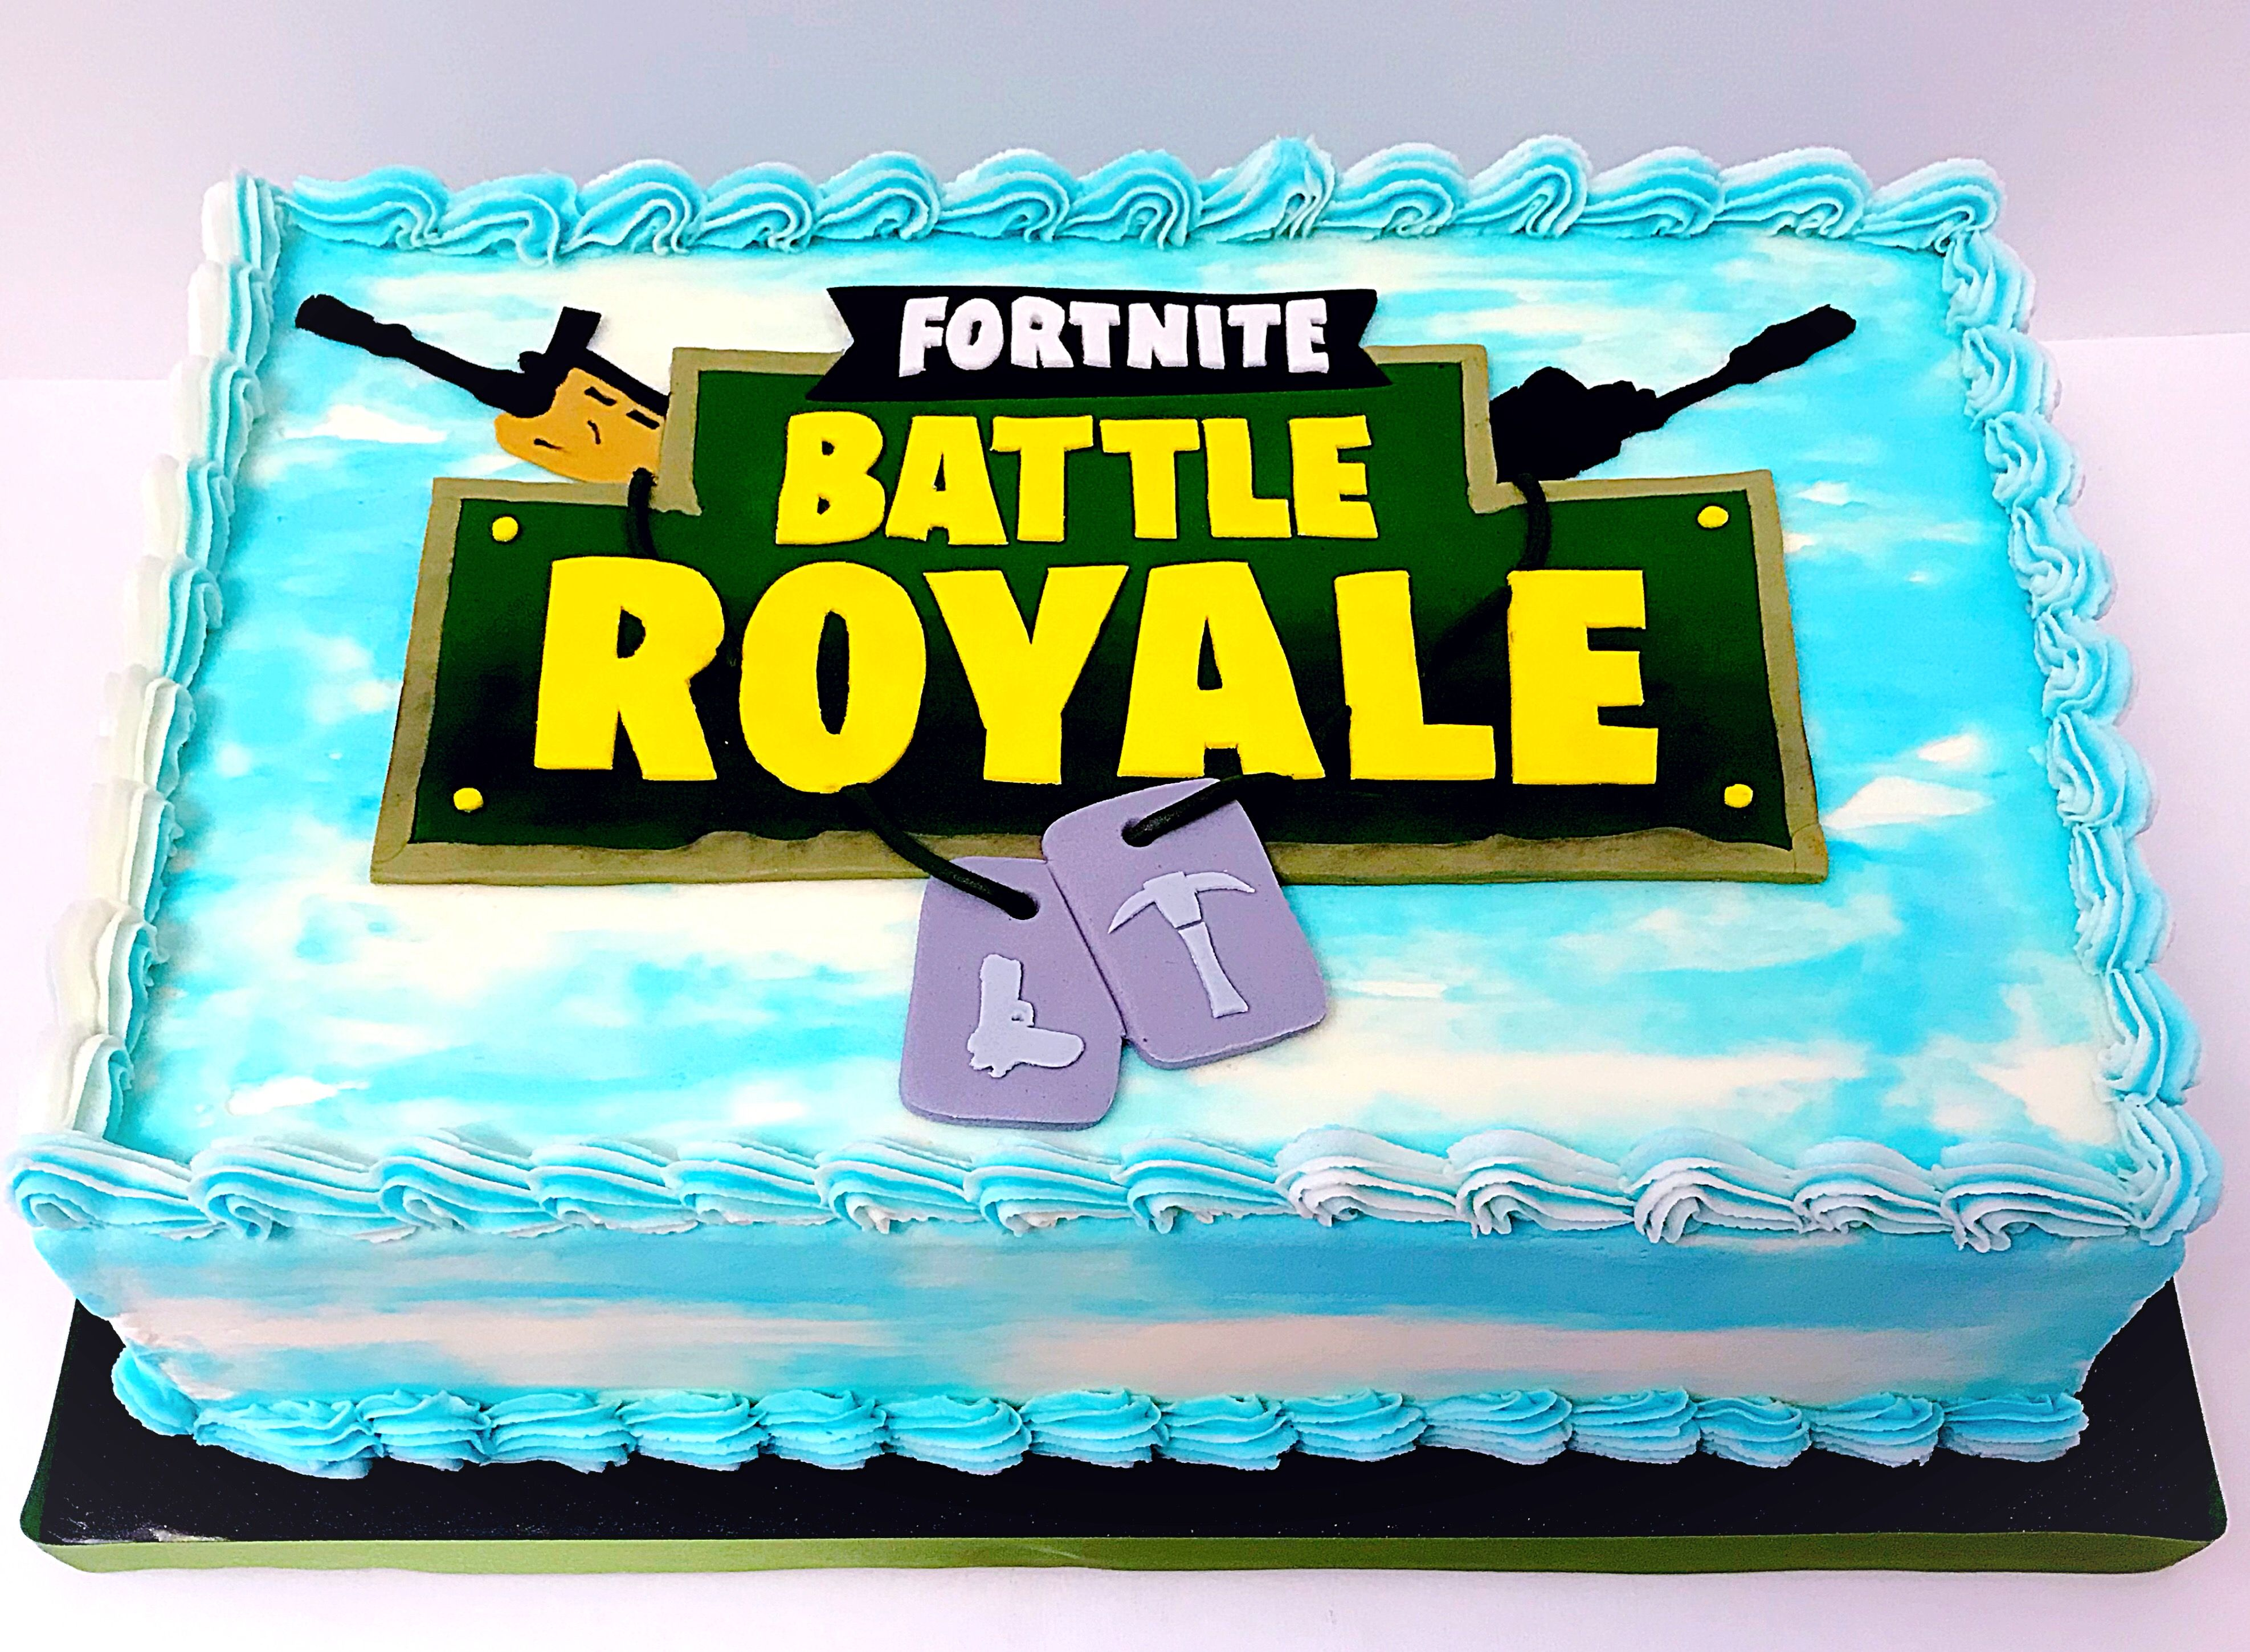 Fortnite Cake Sweet Lia S Cakes Treats In 2019 12th Birthday